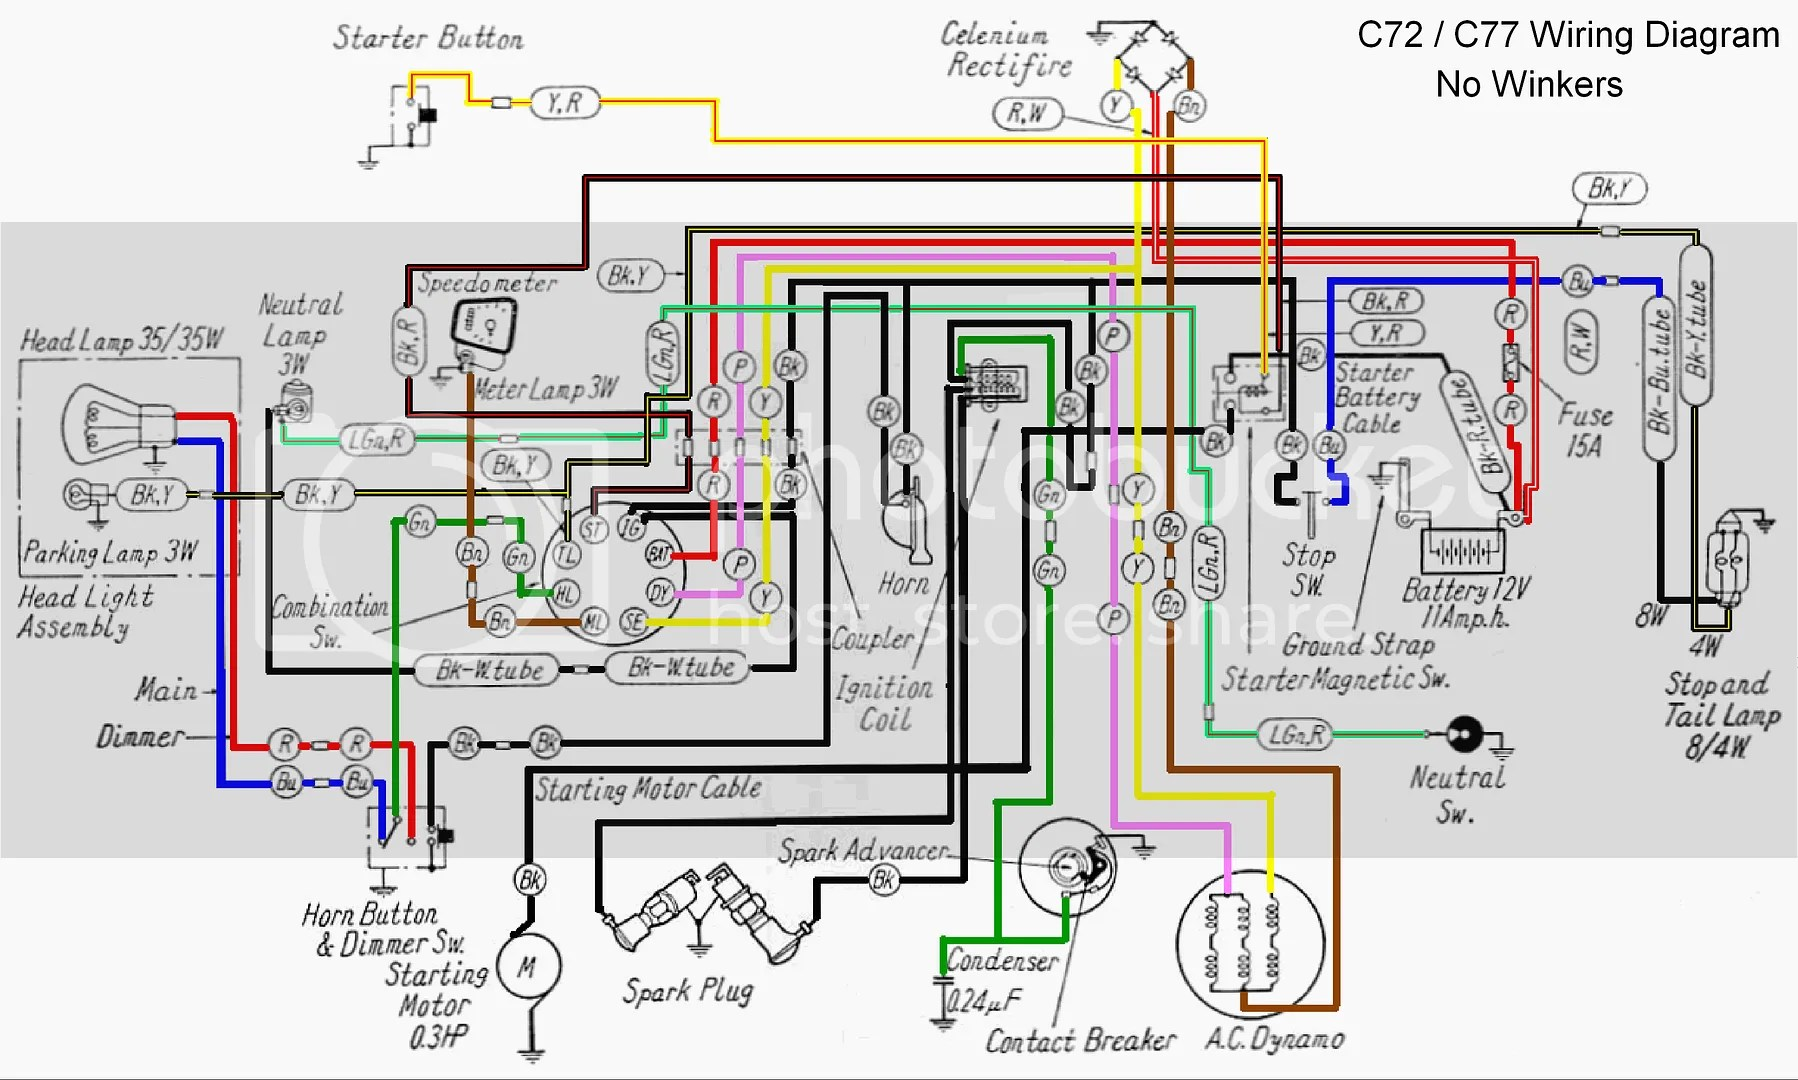 hight resolution of honda305 com forum view topic ca77 wiring diagram with and 1966 honda dream wiring diagram